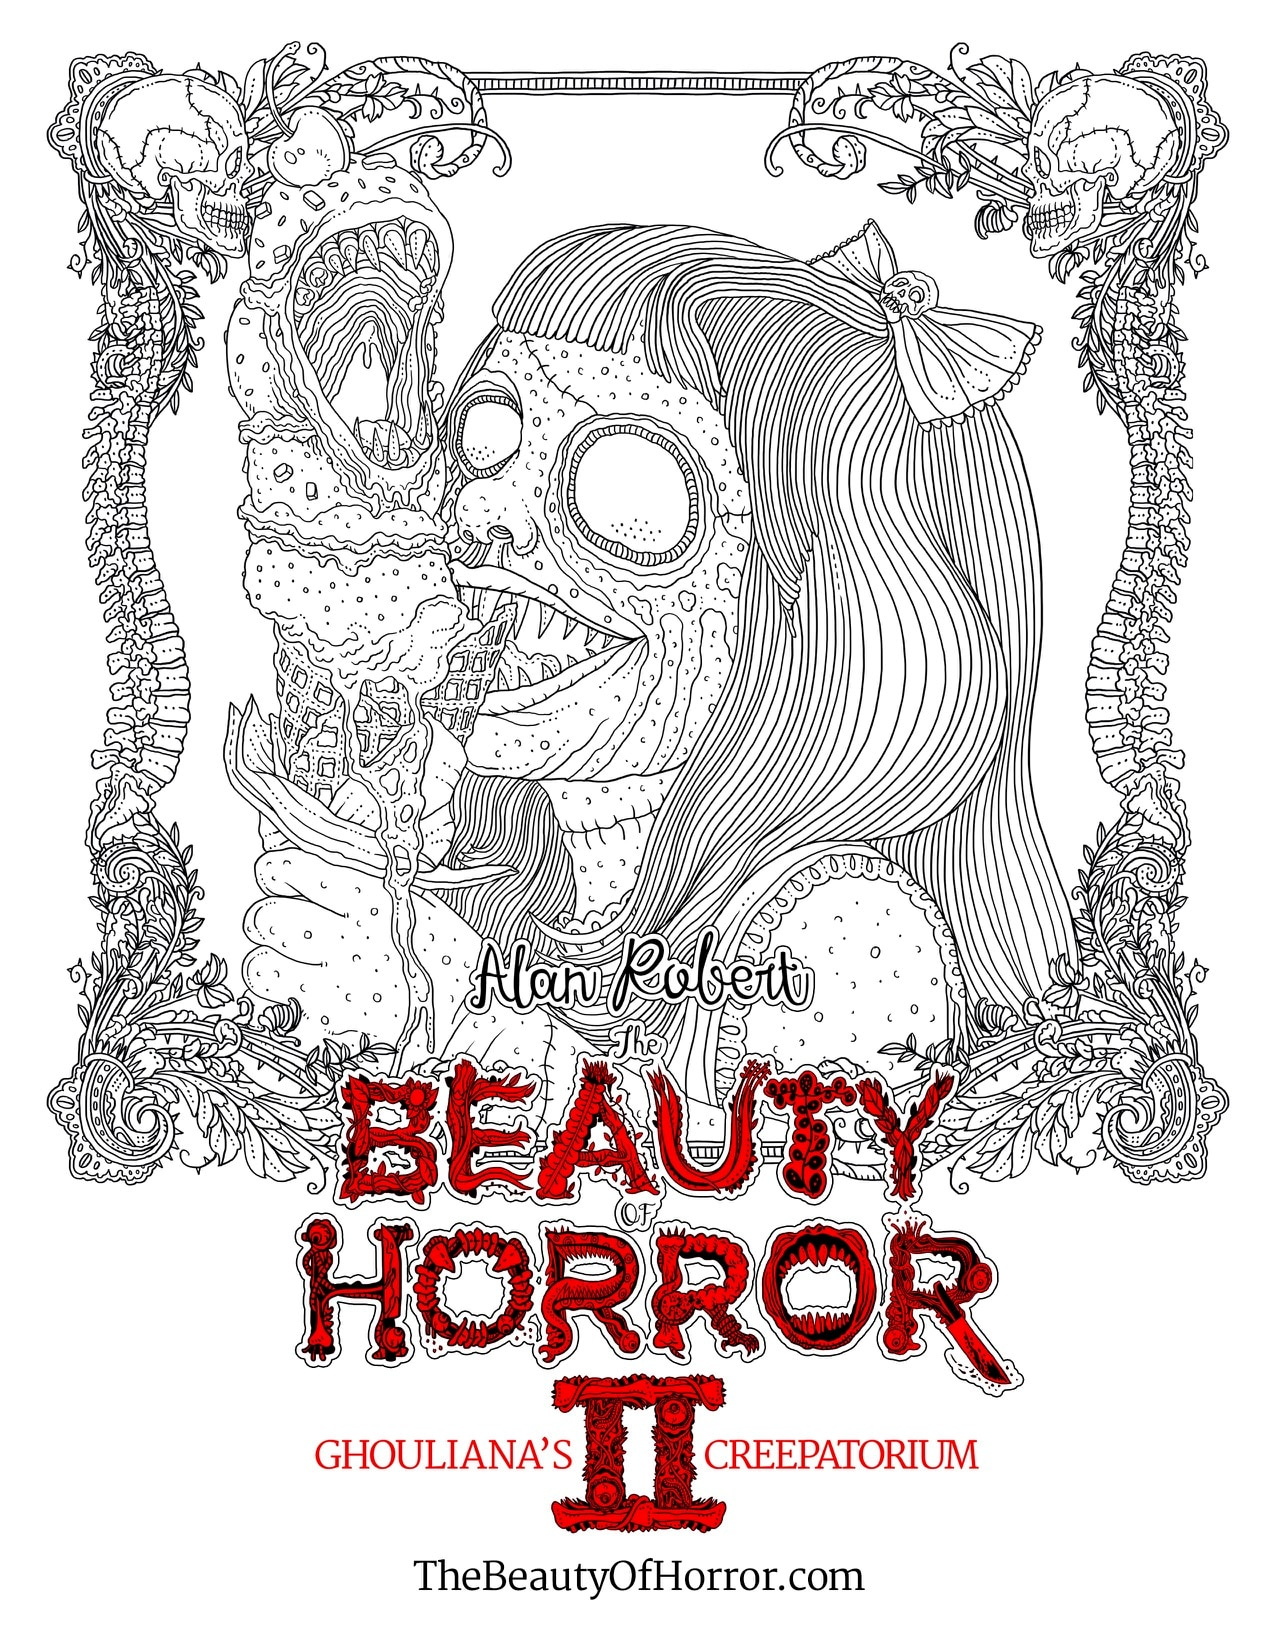 Alan Robert Releases a Page from The Beauty of Horror II ...